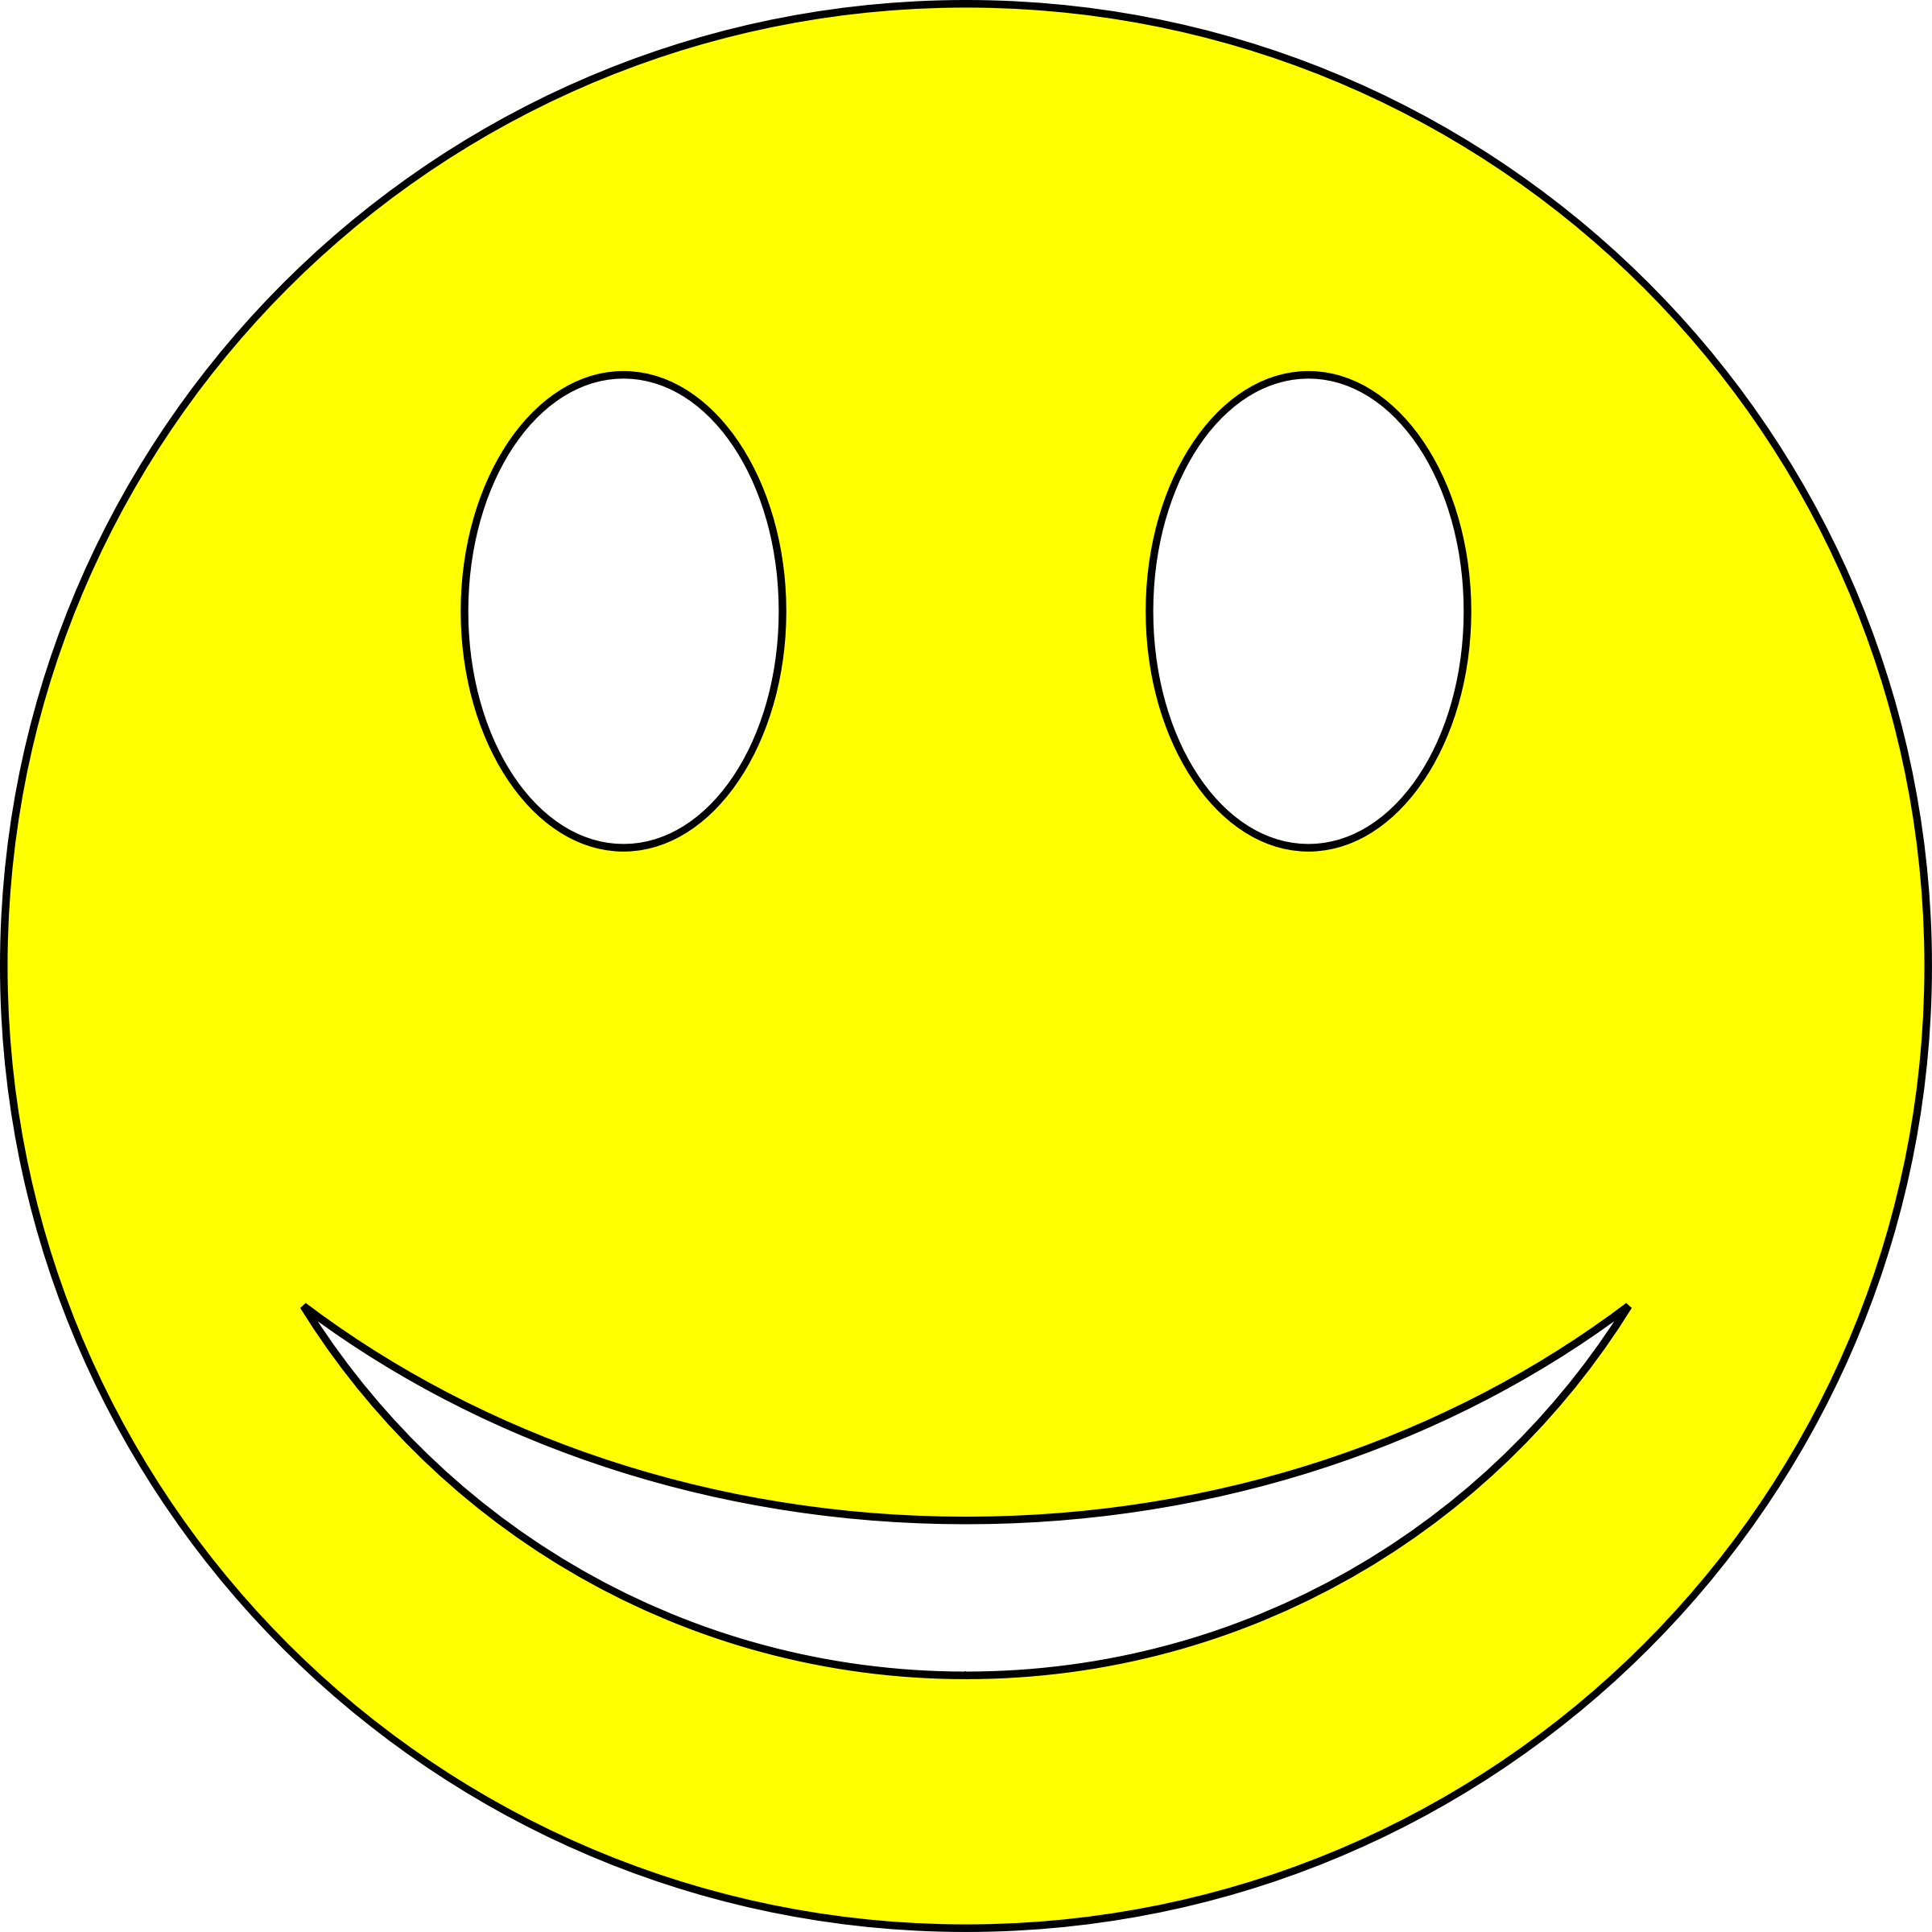 Smileys clipart yellow Smiley Yellow Smiley Yellow Clipart